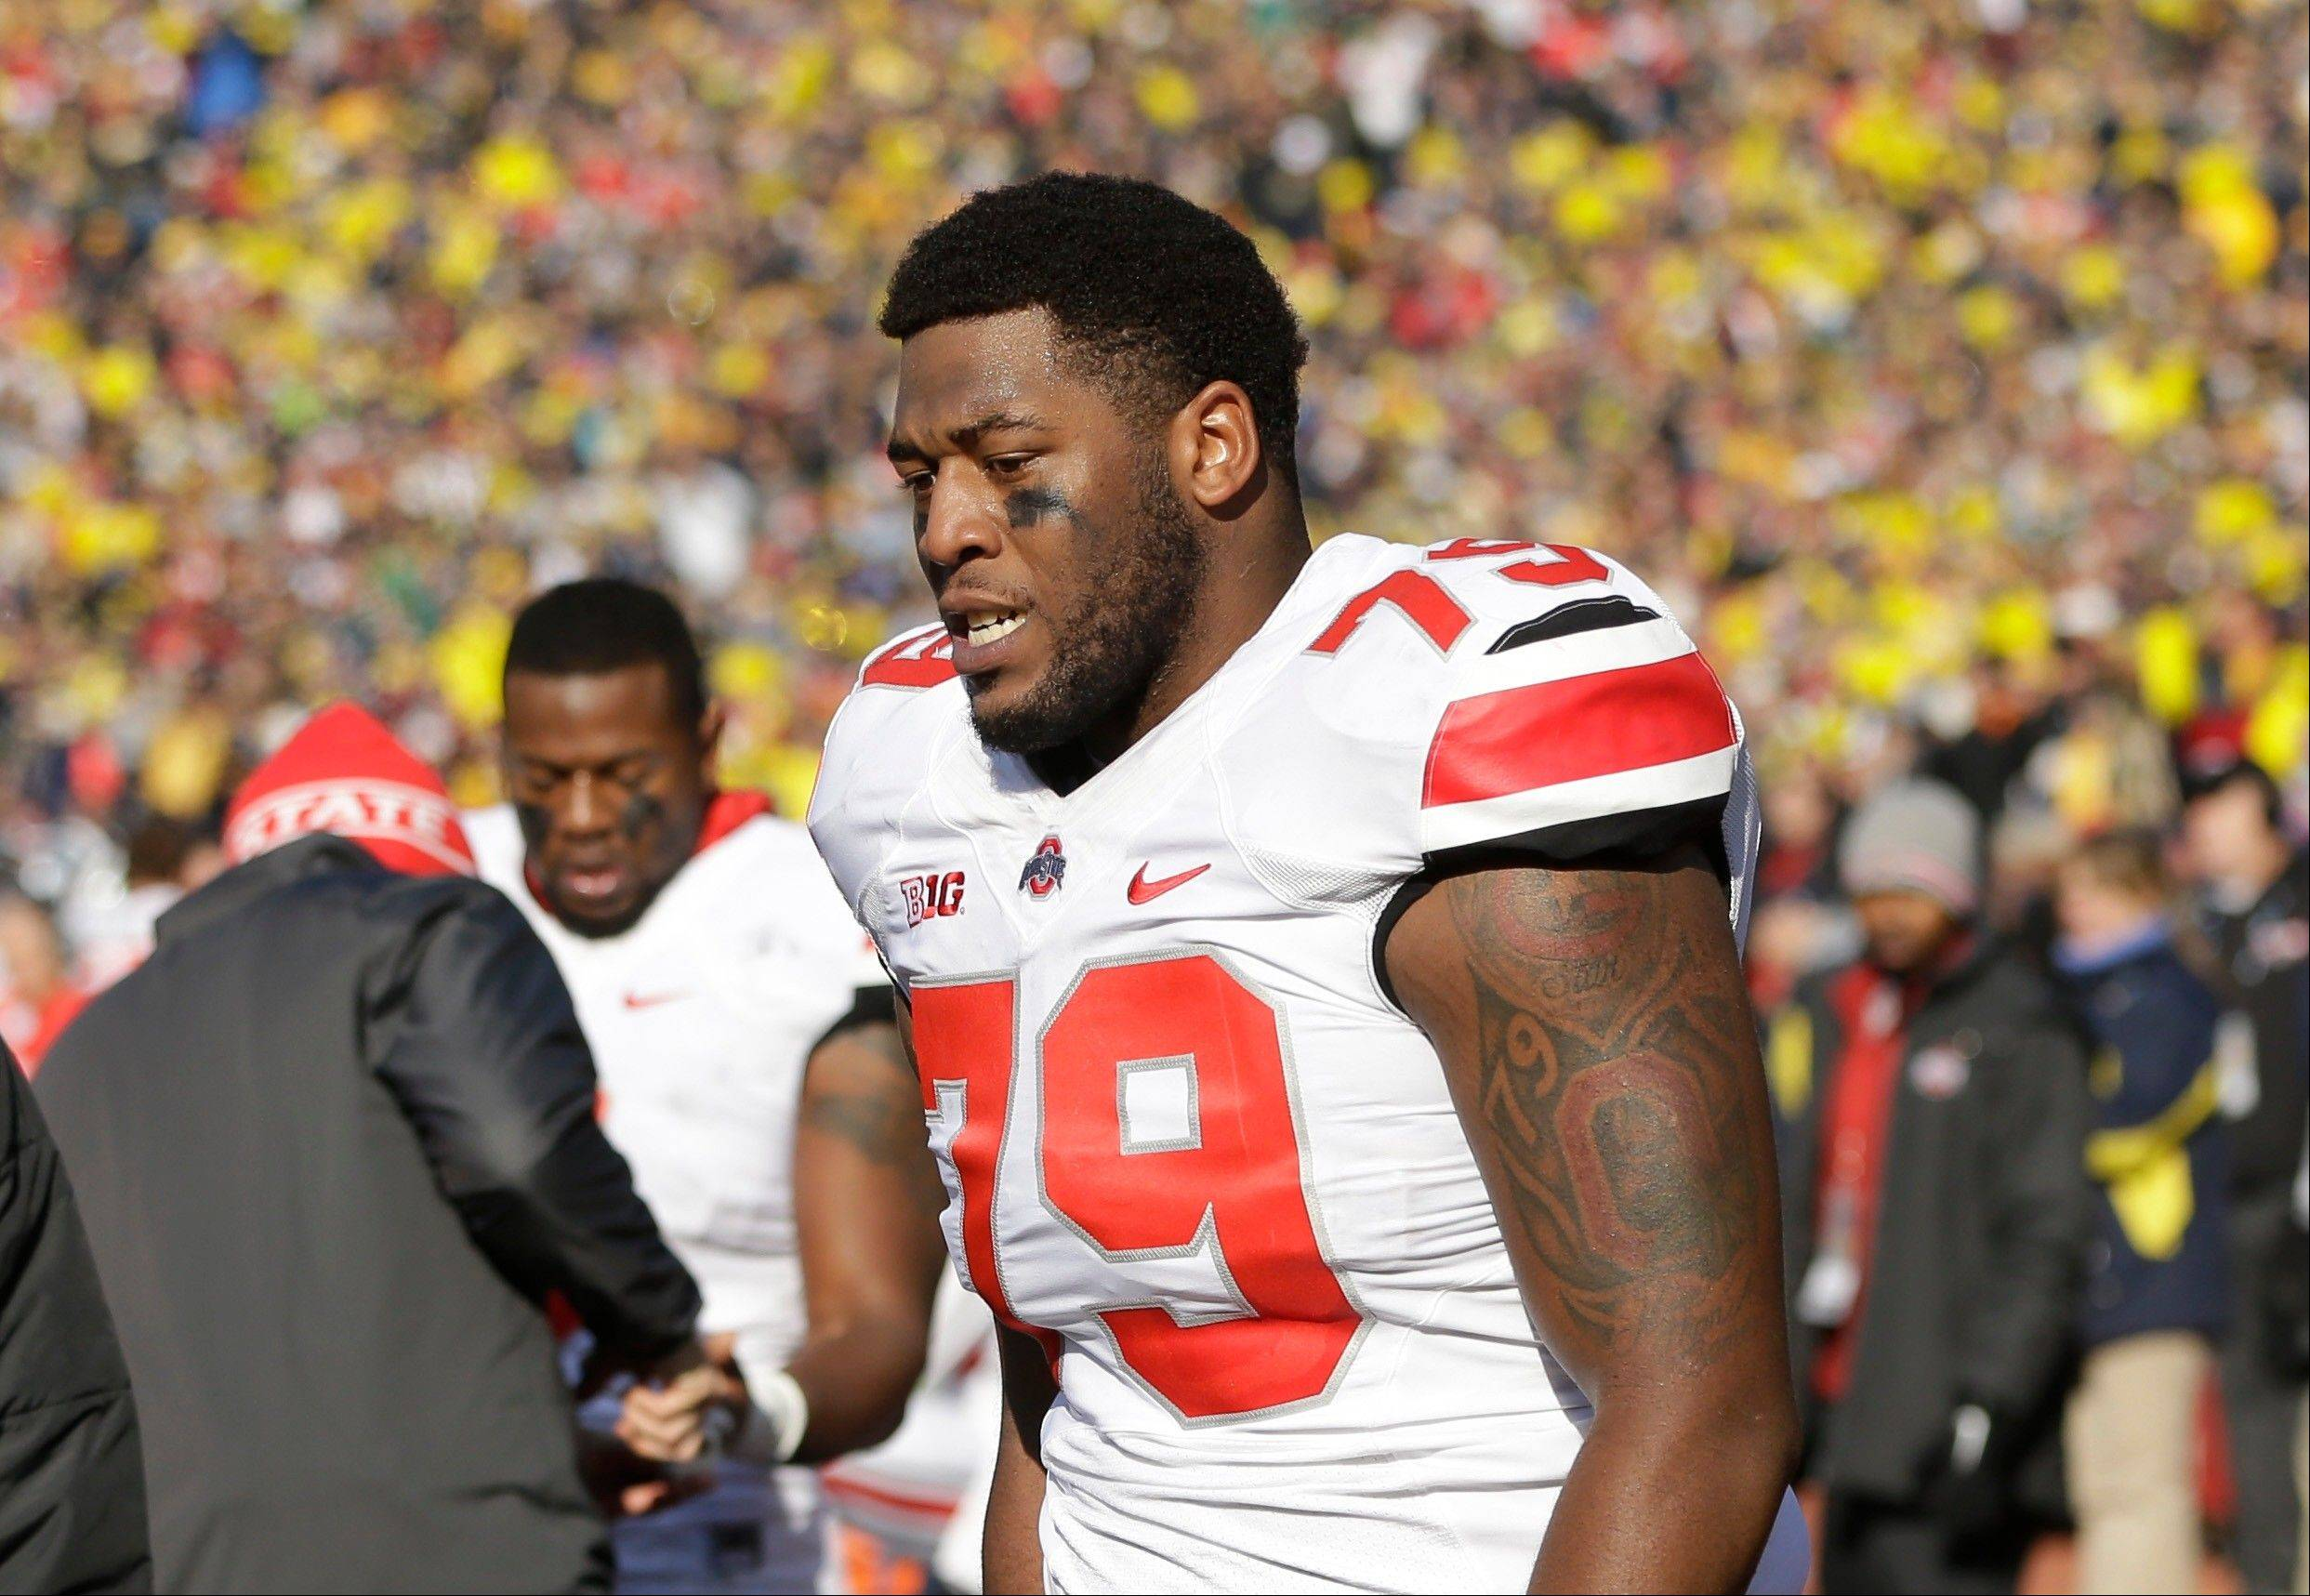 Ohio State offensive linesman Marcus Hall walks the sidelines after being ejected during the second quarter of last Saturday�s game at Michigan.